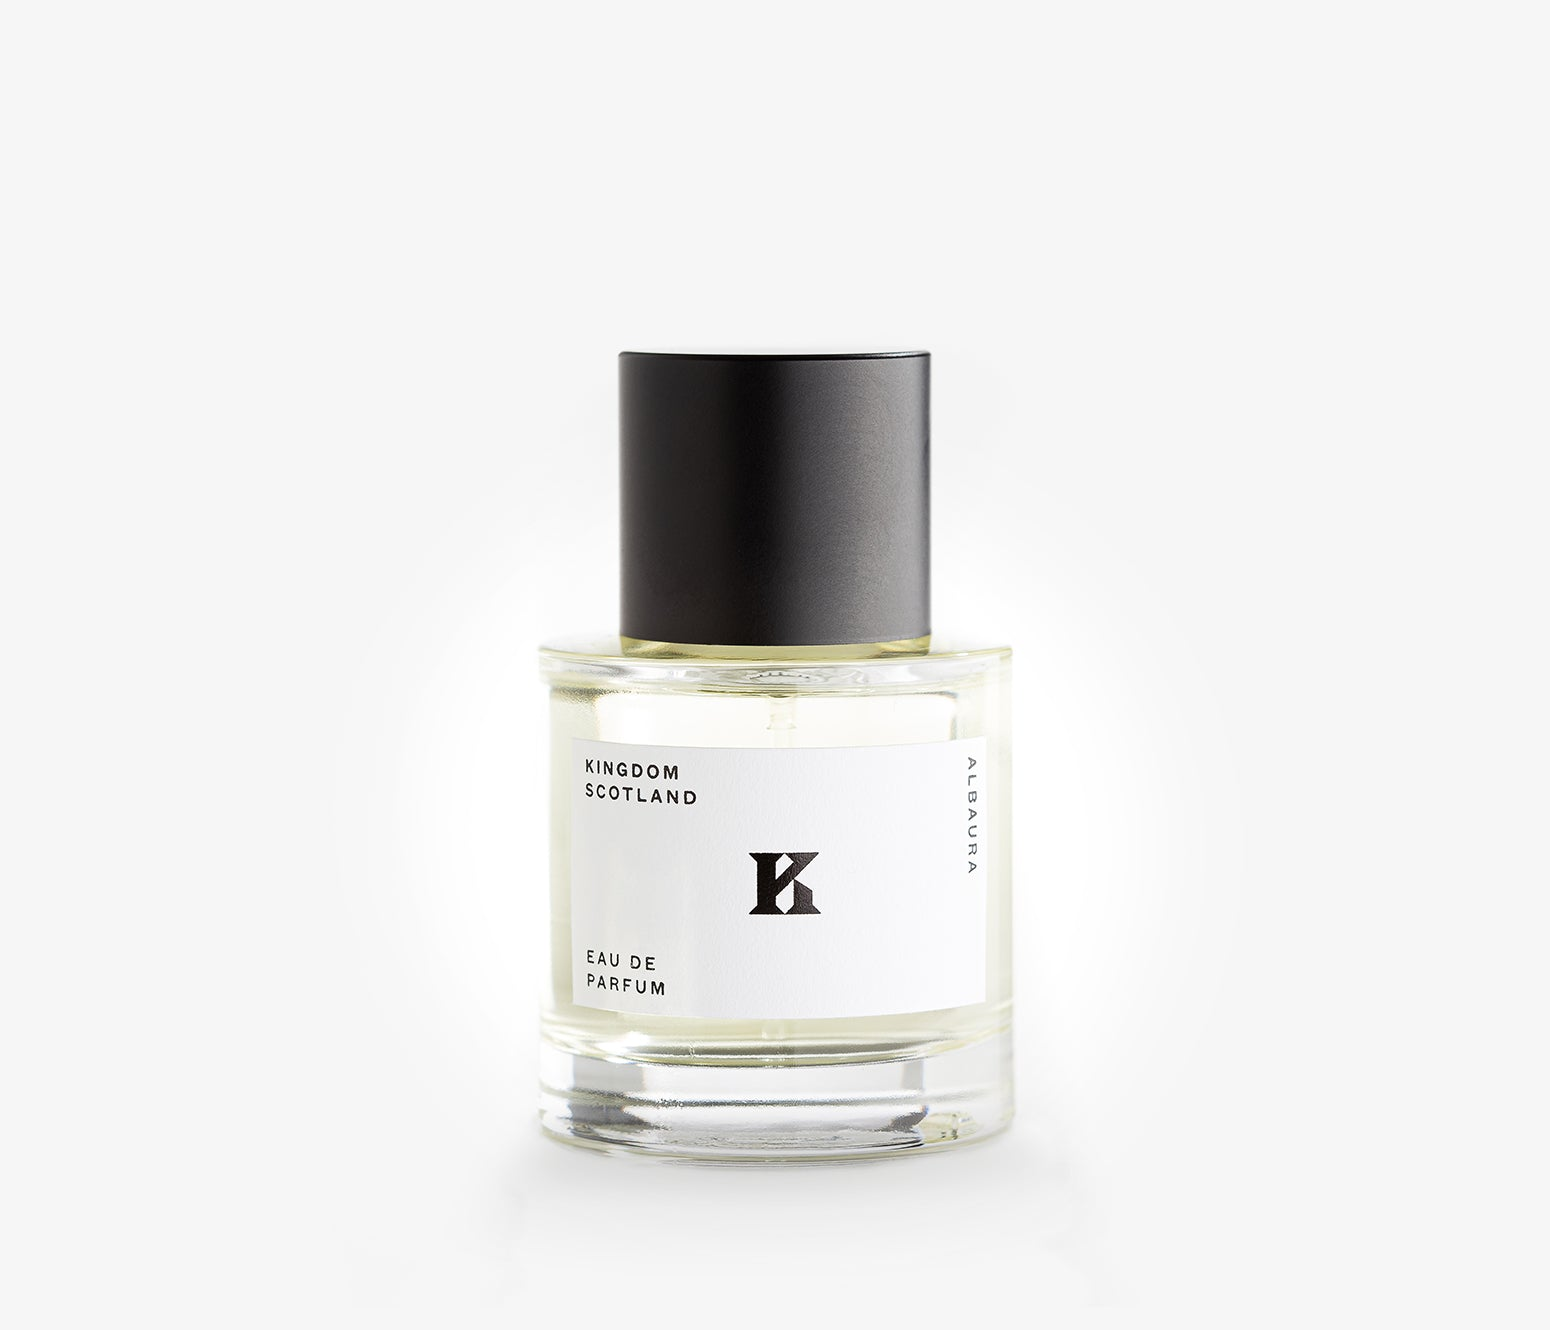 Kingdom Scotland - Albaura - 50ml - JOP001 - product image - Fragrance - Les Senteurs